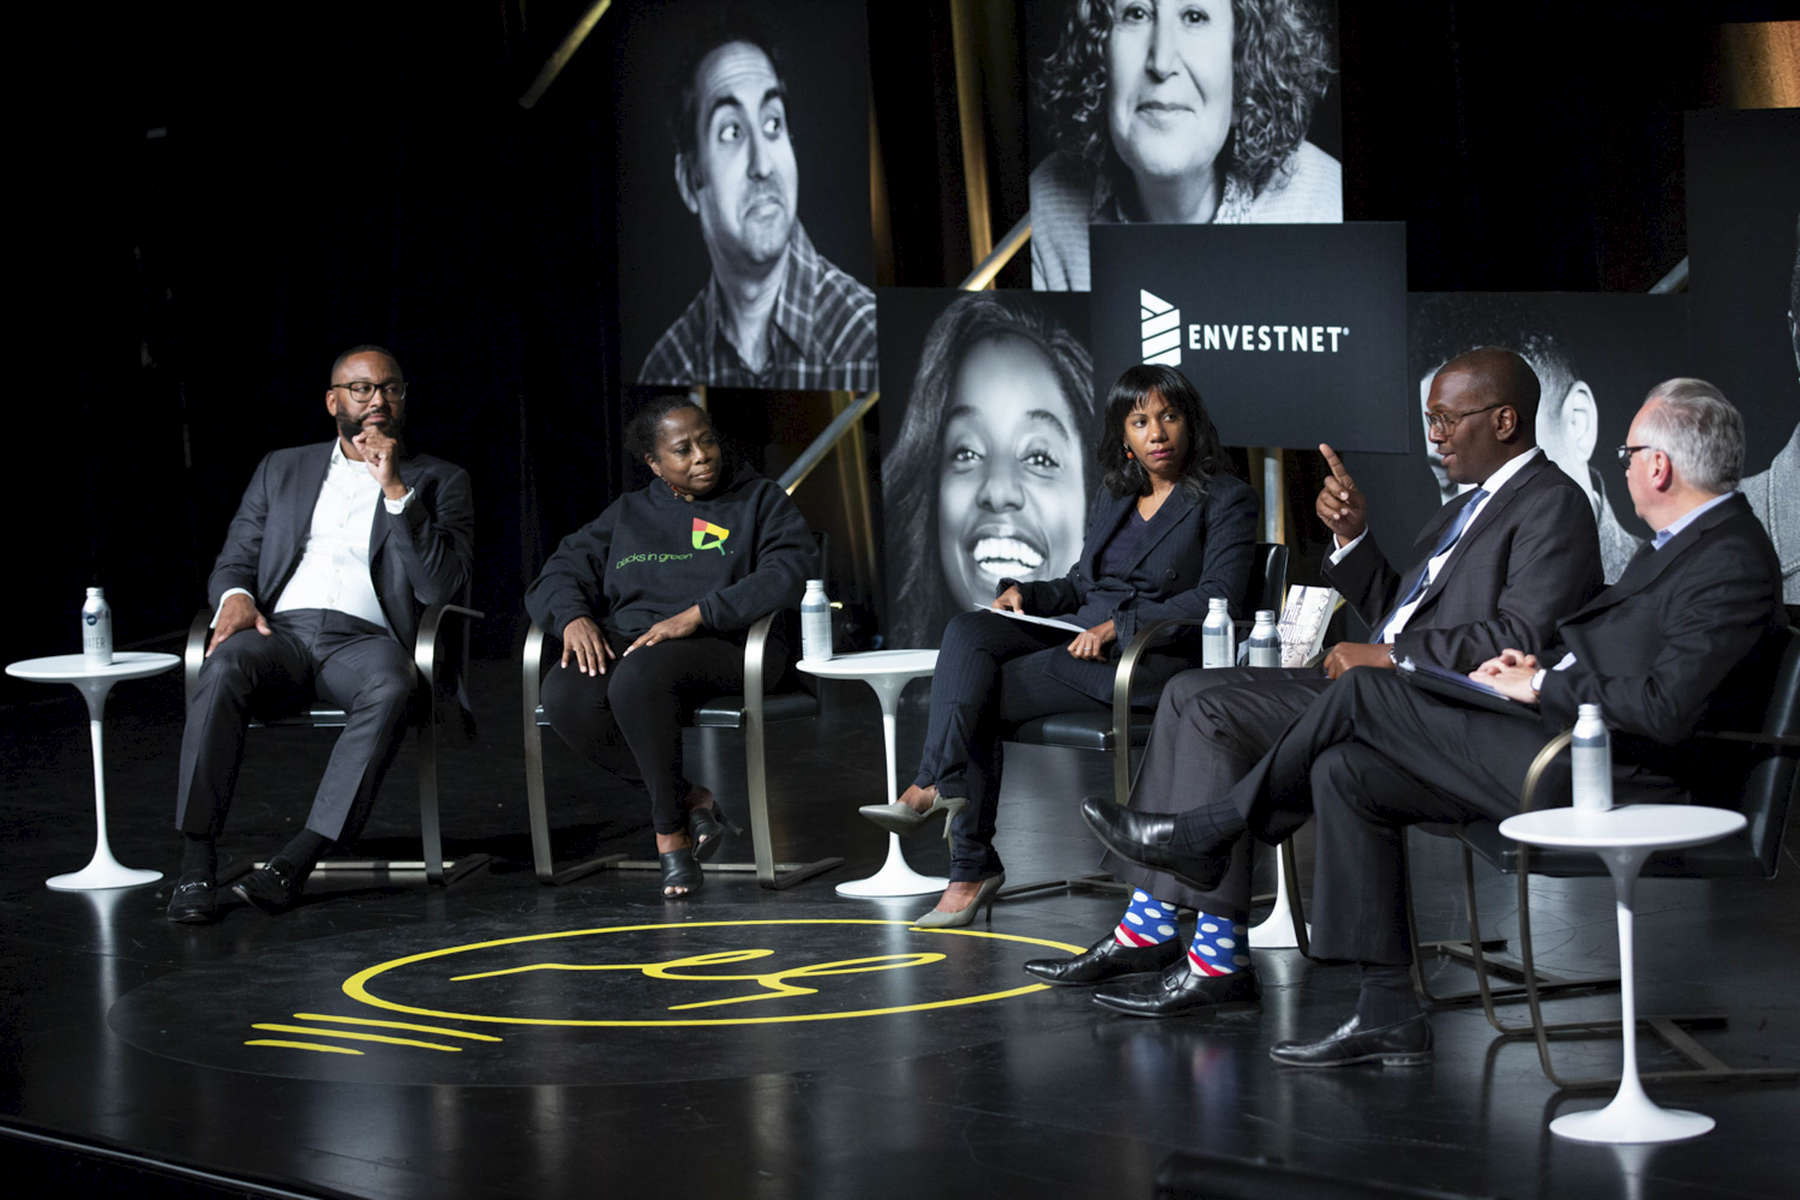 """CHICAGO, IL - OCTOBER 16: Envestnet presents, """"Rethinking Urban Development: A Look at the Obama Presidential Center"""" with panelists, Torrey Barrett, Naomi Davis, Natalie Moore, Ghian Foreman, and David Doig.  (Photo by Beth Rooney/Chicago Ideas Week)"""